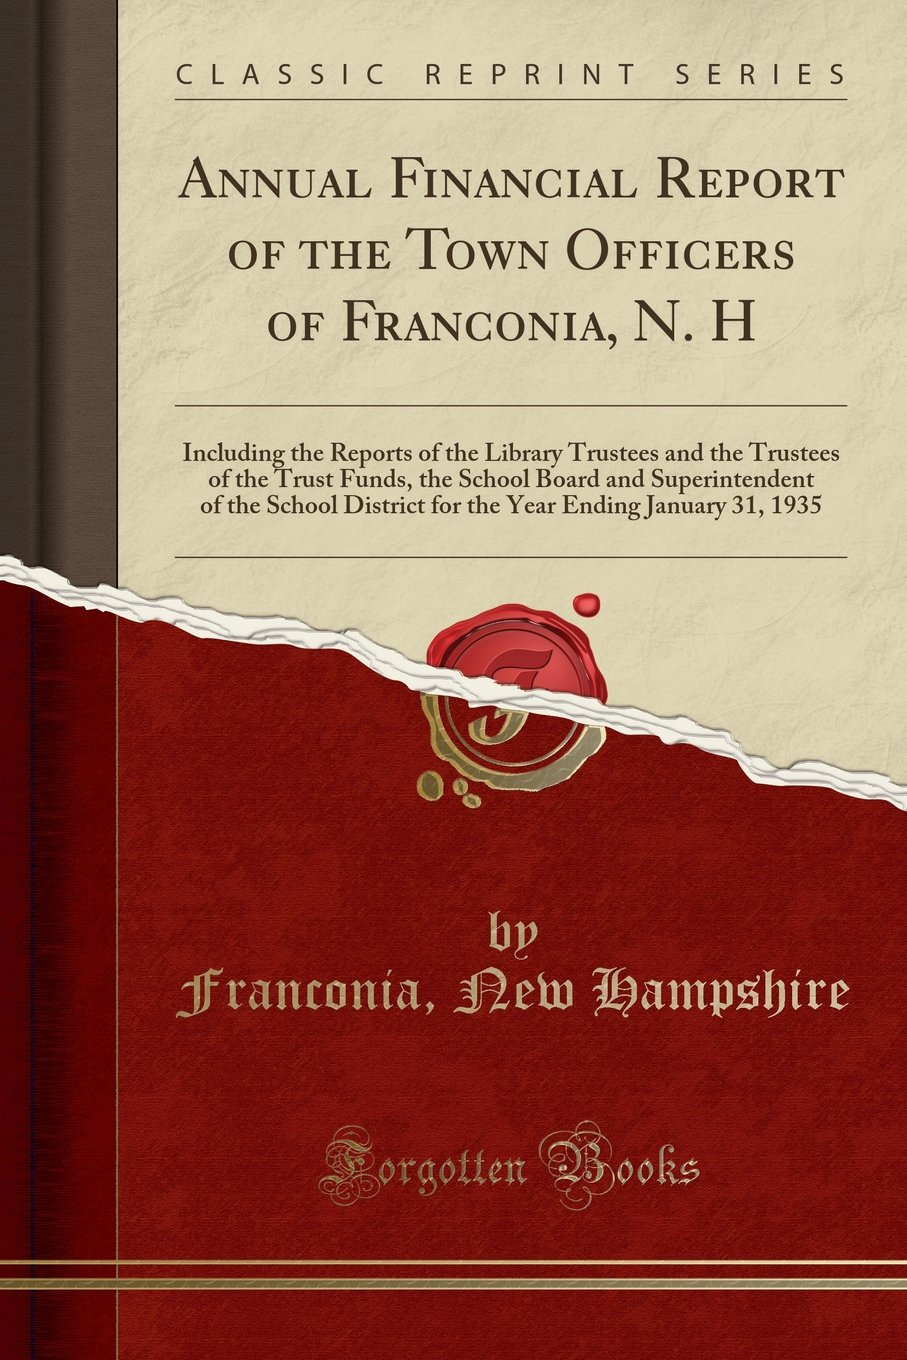 Read Online Annual Financial Report of the Town Officers of Franconia, N. H: Including the Reports of the Library Trustees and the Trustees of the Trust Funds, ... District for the Year Ending January 31, 1935 pdf epub